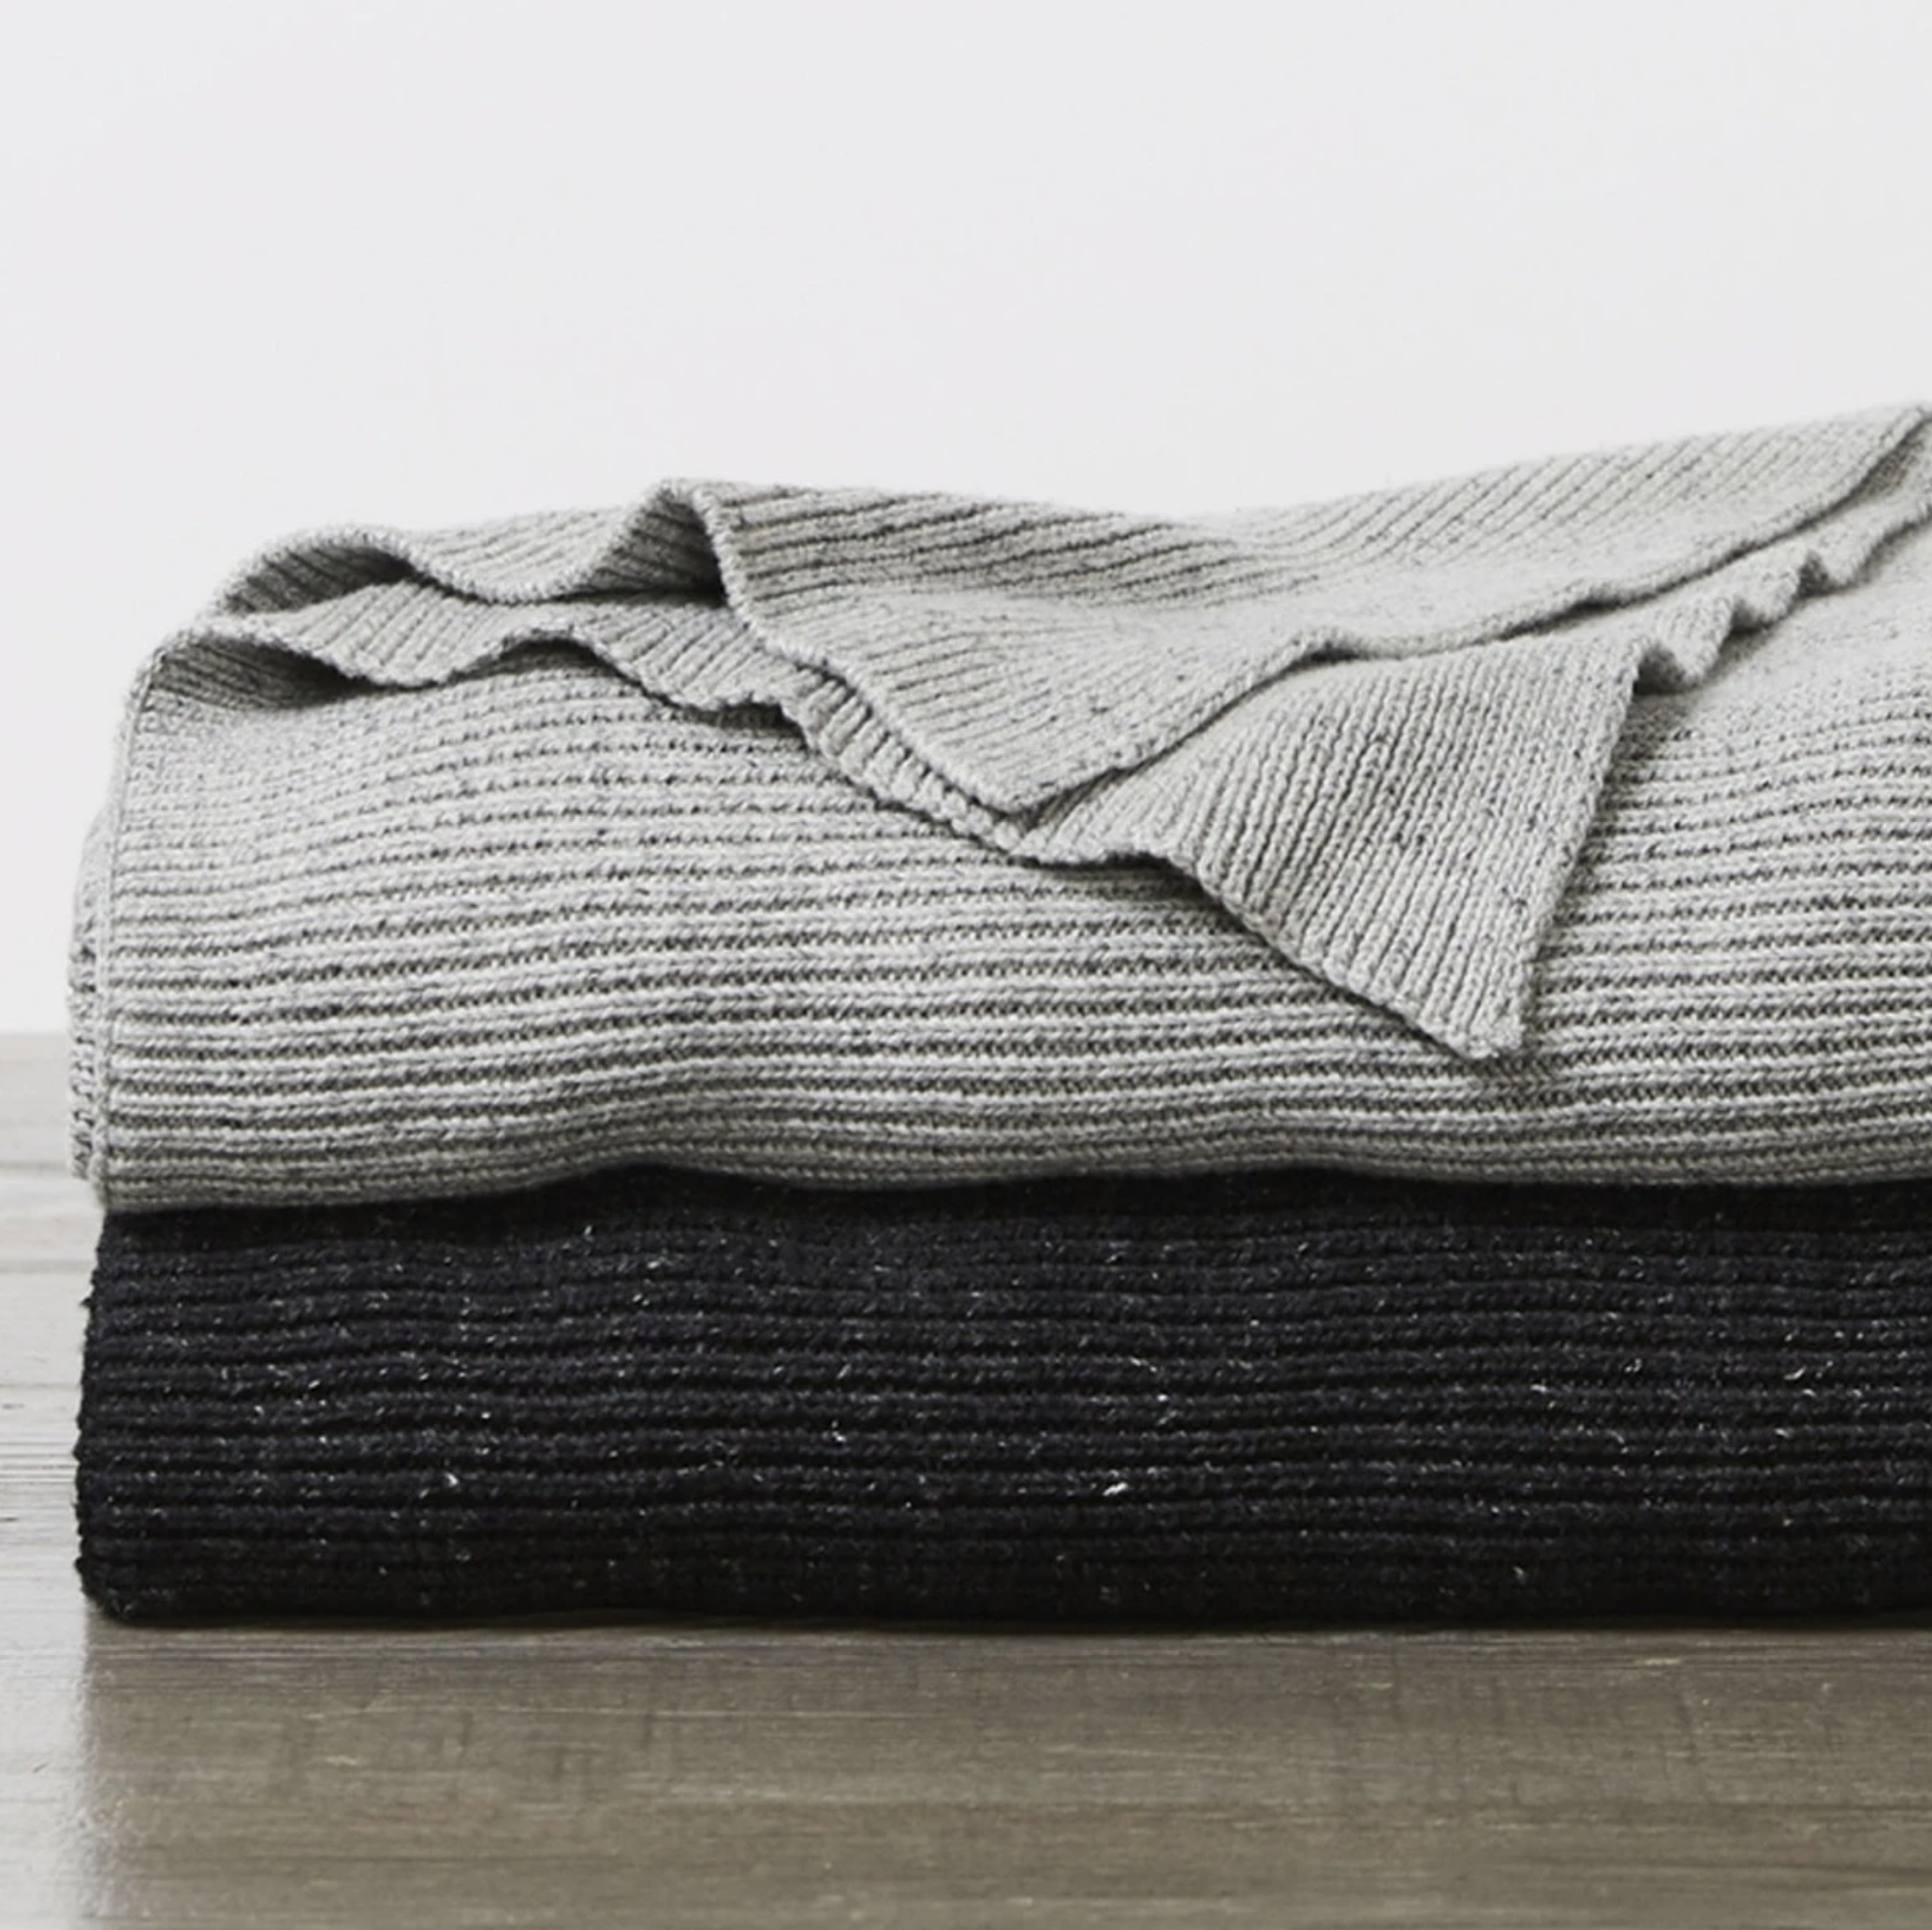 Natural Material Blankets And Throws Organic Cotton Blankets And Throws